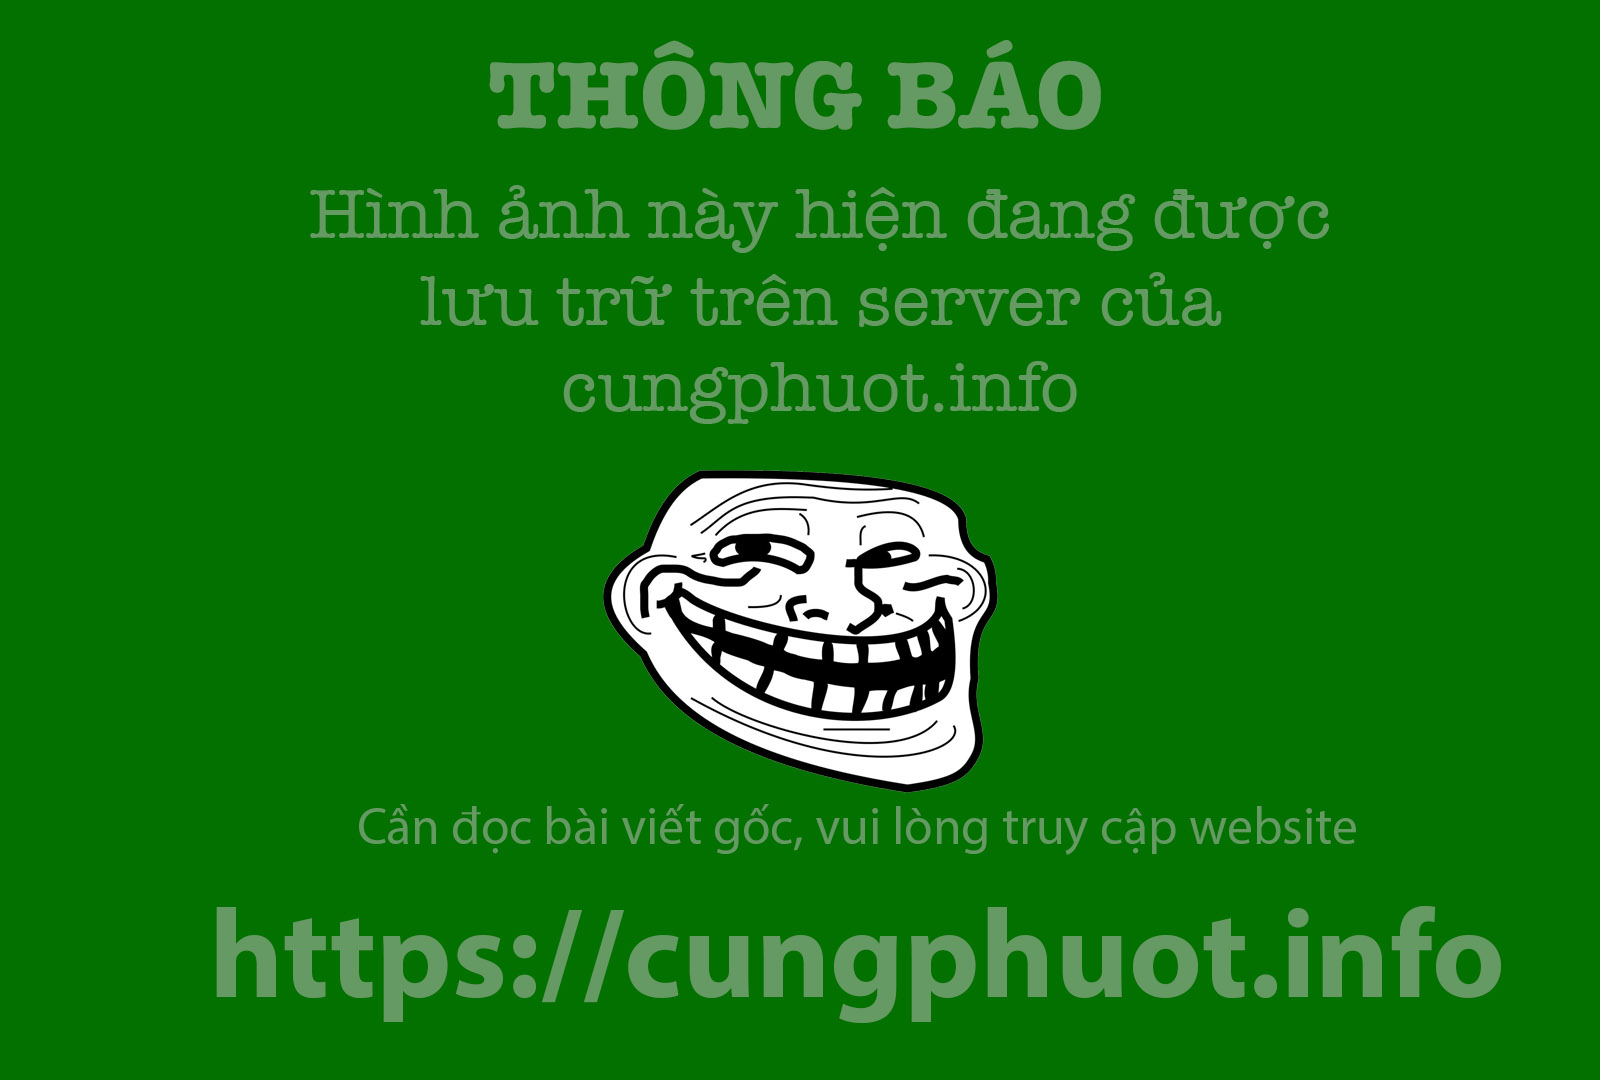 Mien Tay mua nuoc noi di mai chang het diem check-in hinh anh 8